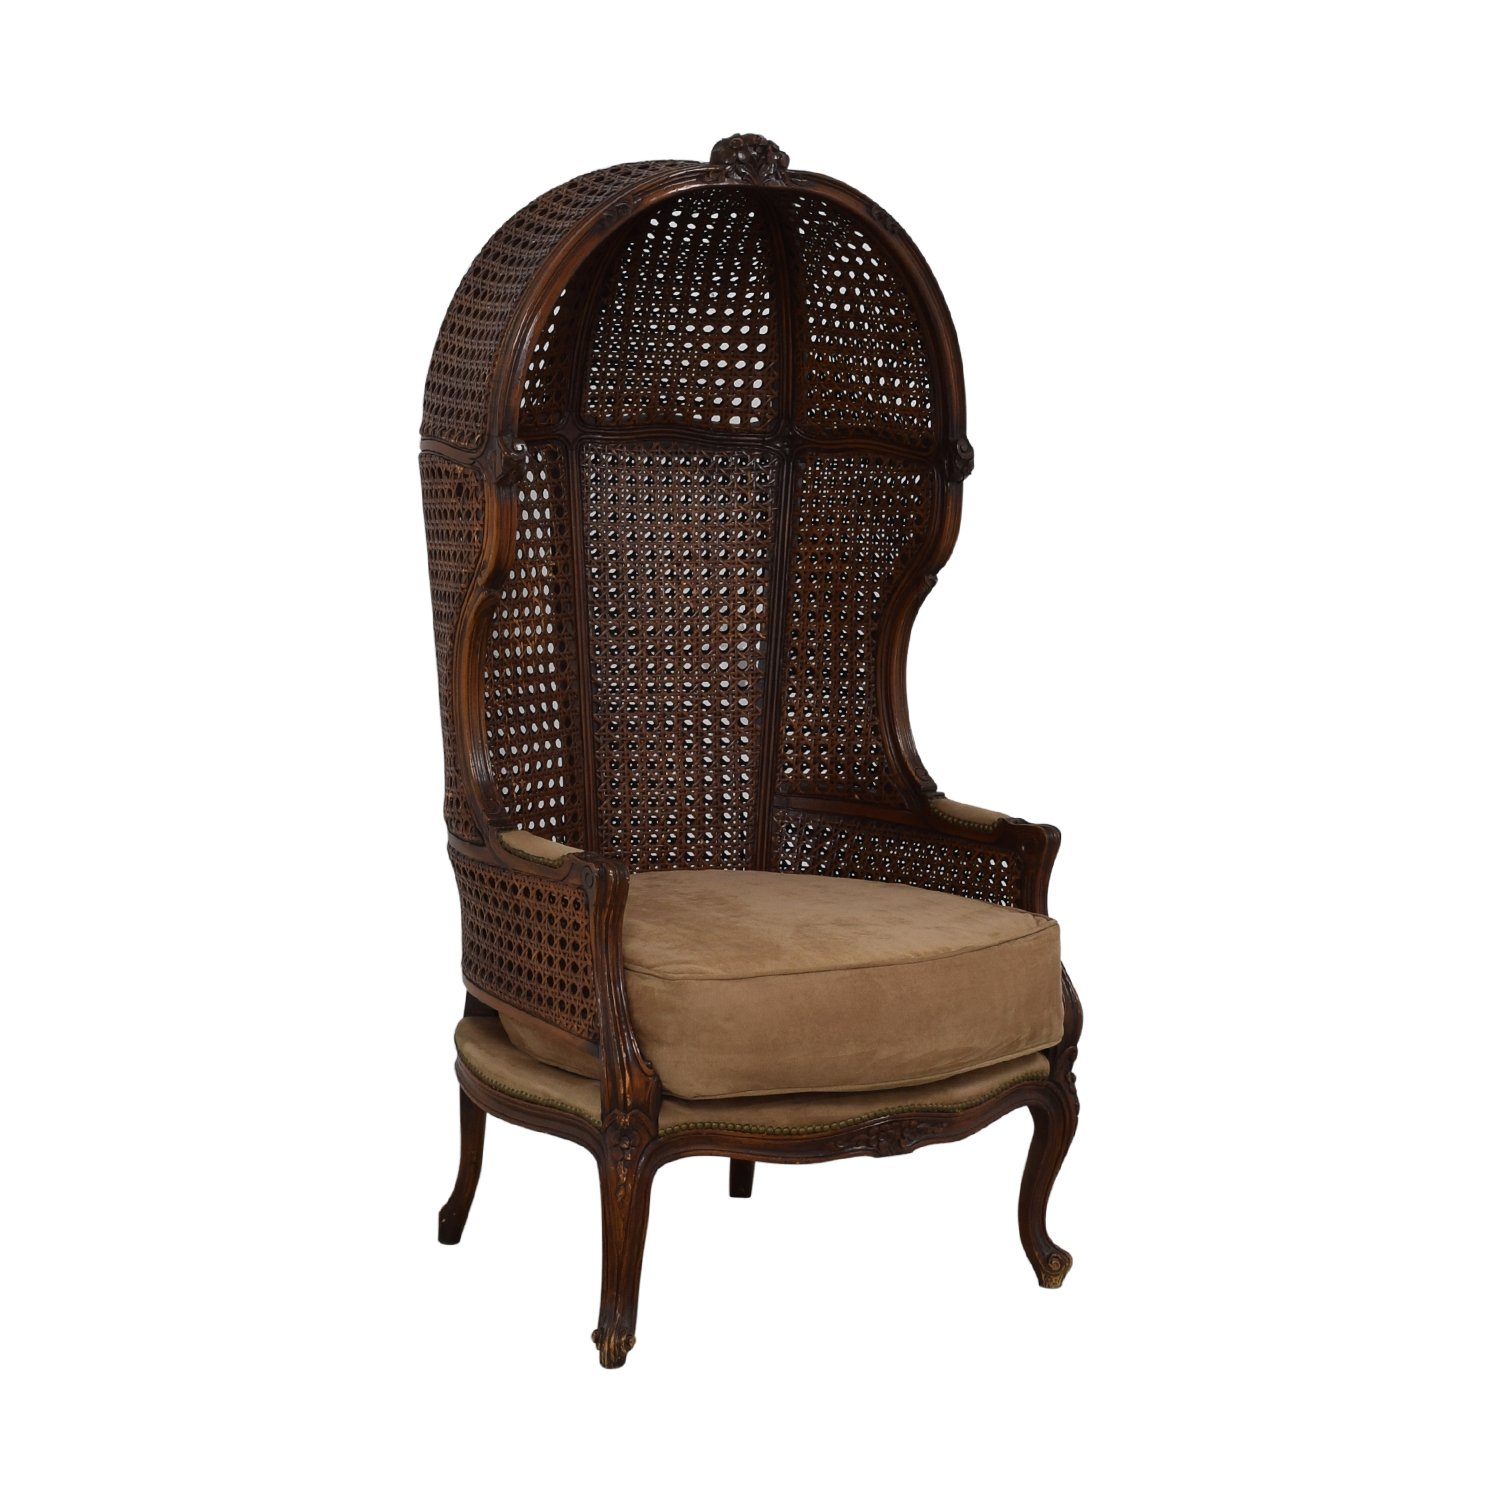 Canopy Cane Back Chair second hand